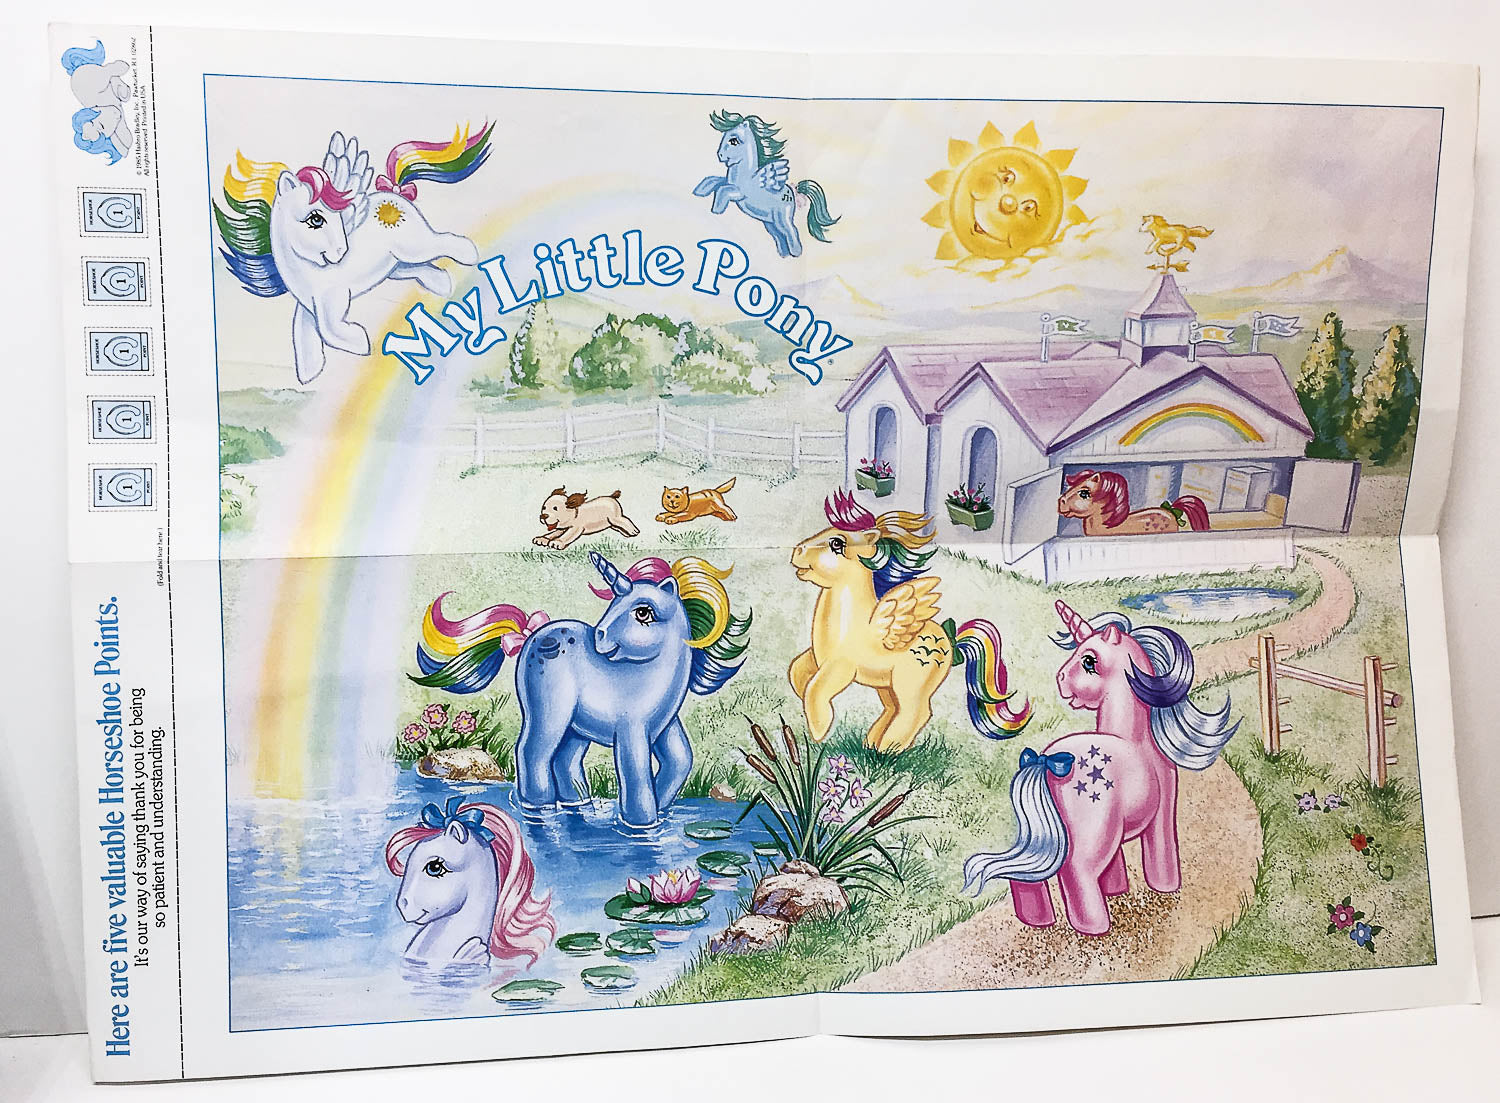 My Little Pony Collector's Poster - 1980s (Sale supports Harvest Hills Animal Shelter)